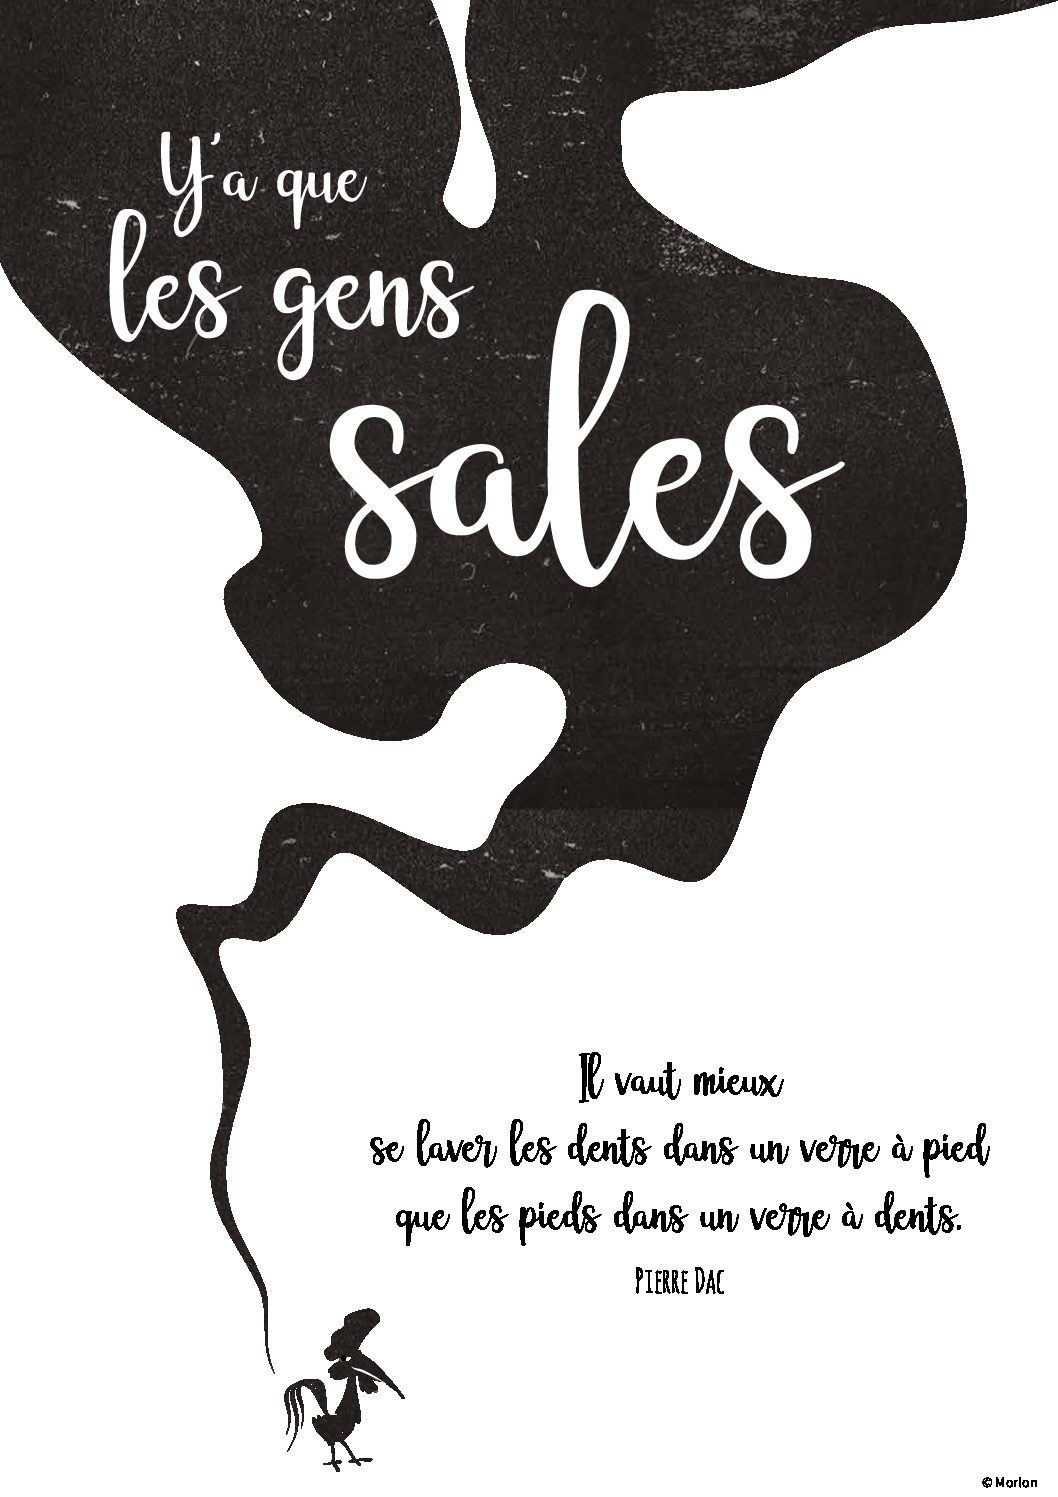 Y'a que les gens sales – Partition – Yohan Salvat copie